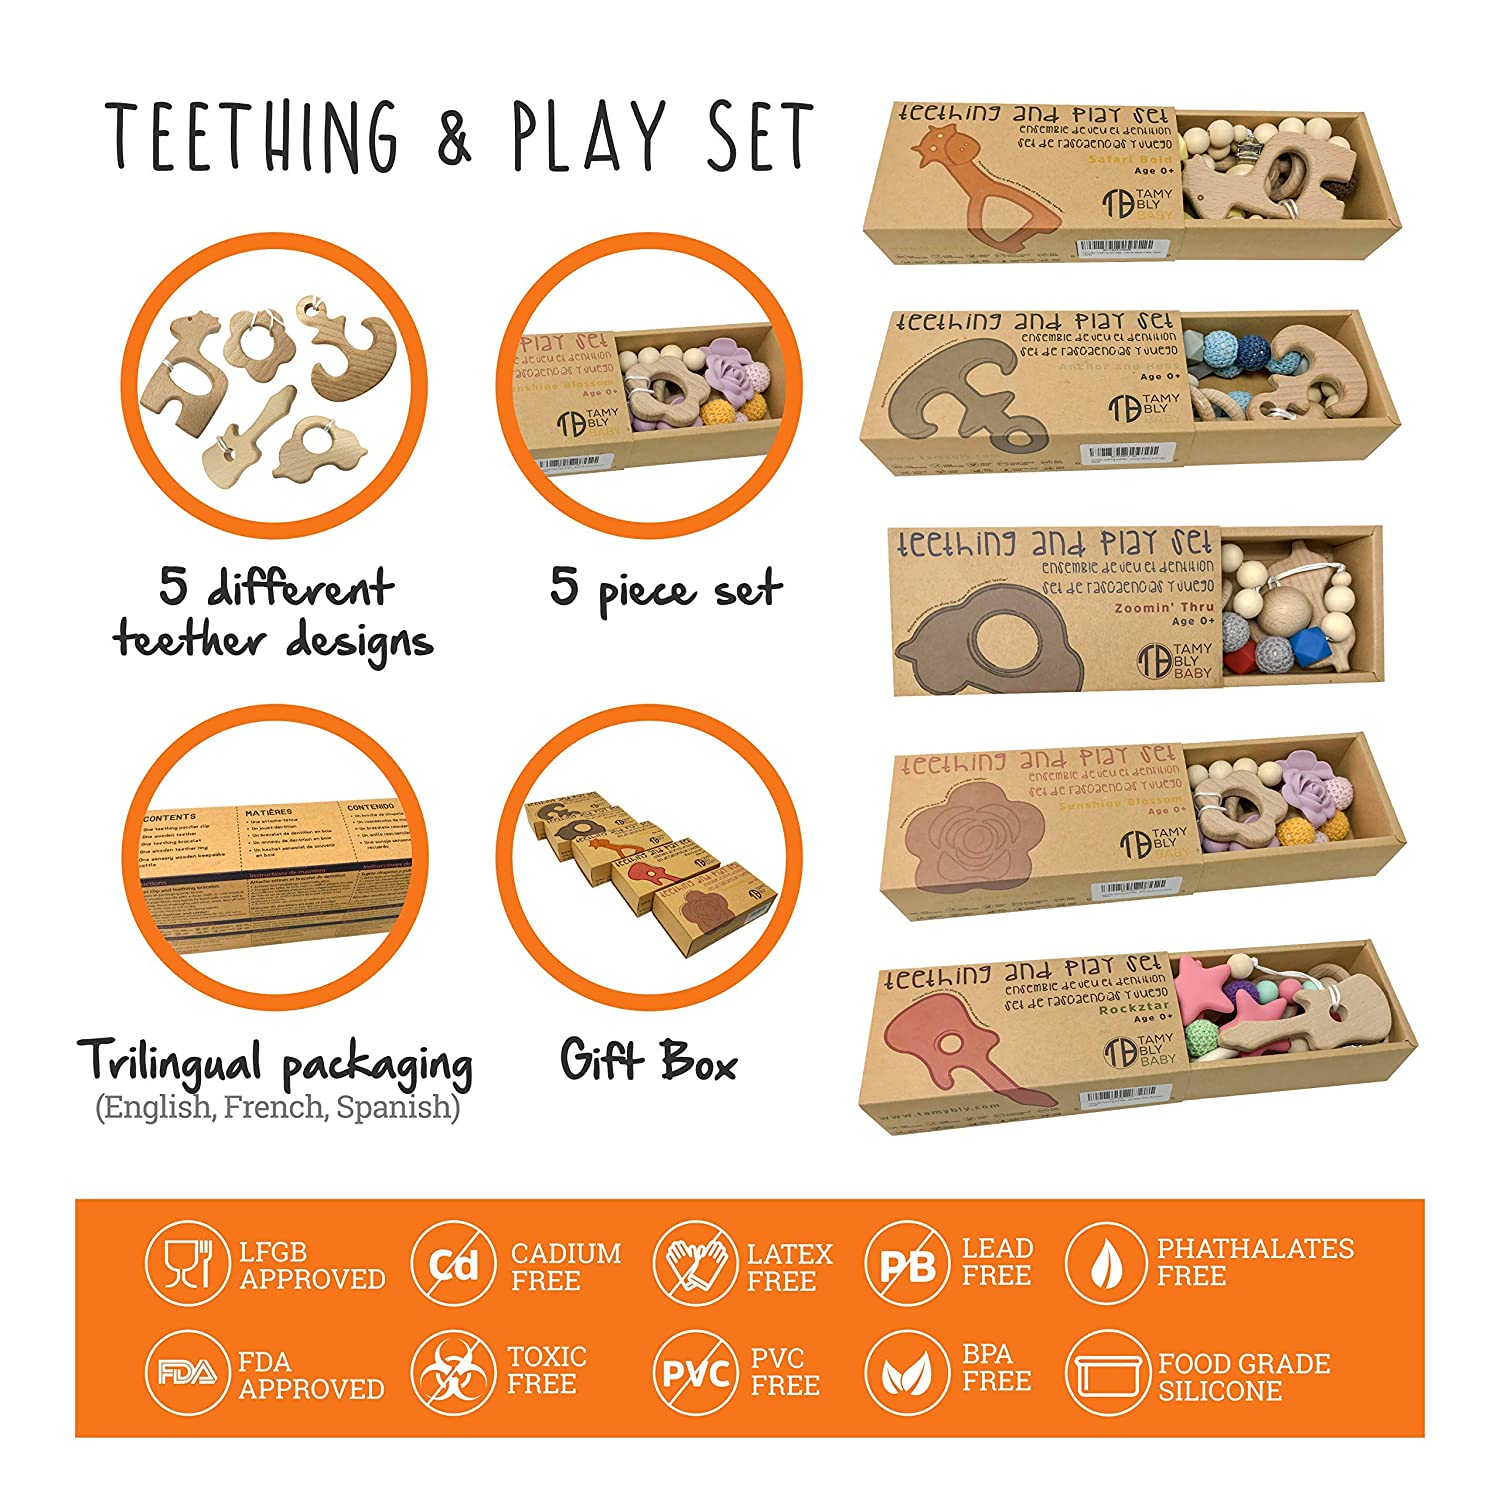 Tamy Bly Natural Wood /& Silicone Pacifier Clip Teether Wood Teething Rings,Updated Assembled Wood Teething Rattle|5pcs Baby Teether Toys Set|BPA Free|Anchor /& Hugs Teething Bracelet Wooden Teethers